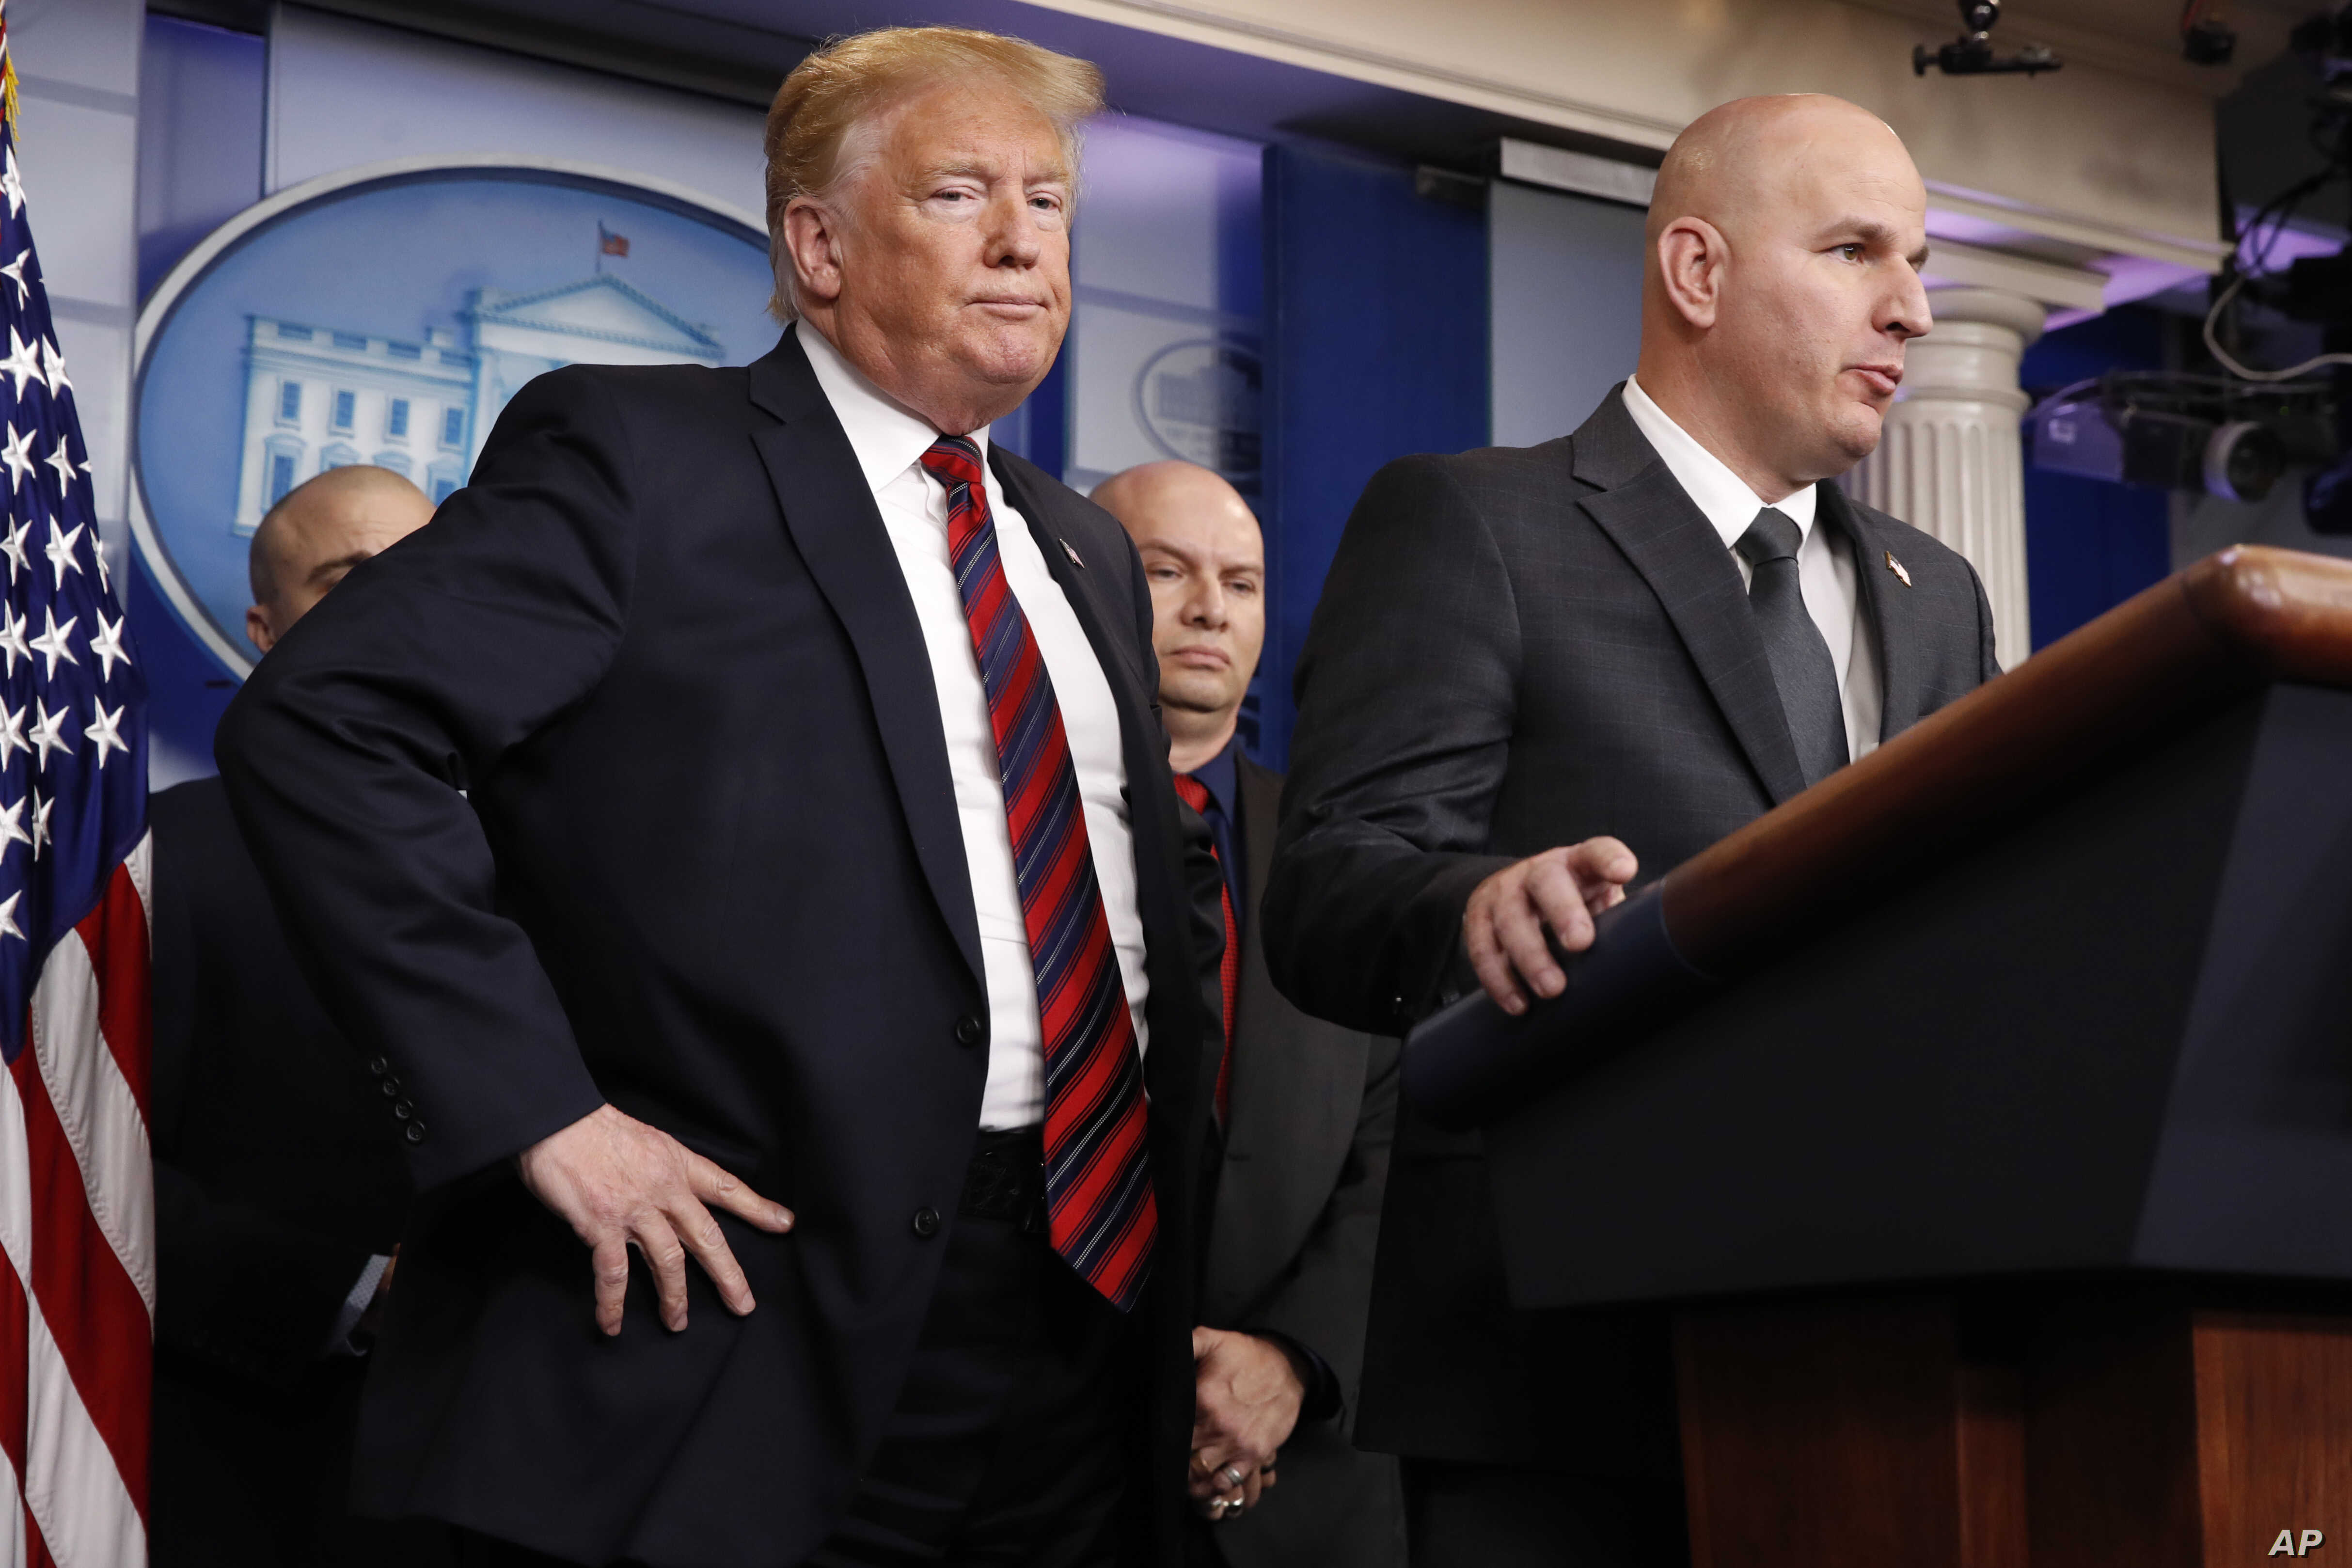 President Donald Trump, left, listens as Brandon Judd, president of the National Border Patrol Council, talks about border security, Jan. 3, 2019, after making a surprise visit to the press briefing room of the White House.